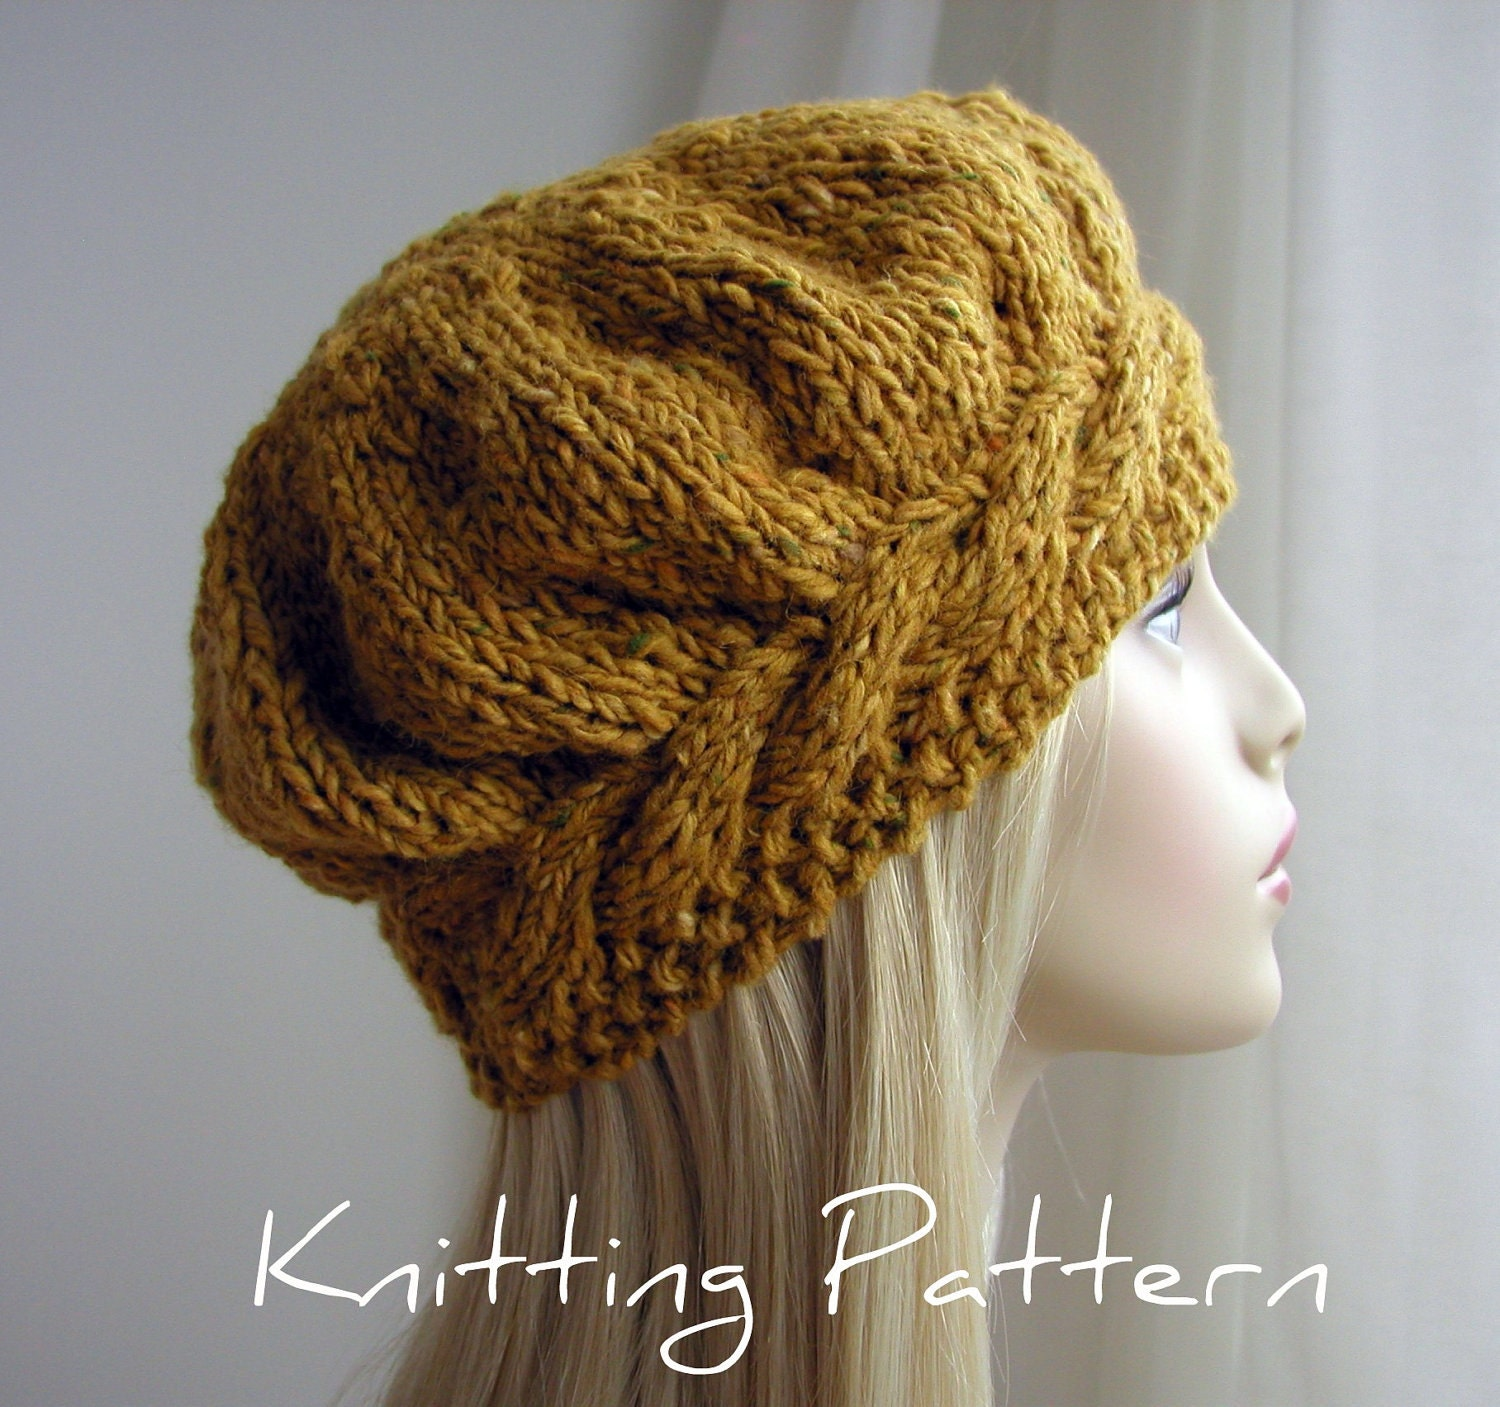 Free Knitting Pattern Toddler Beret : Free Knitted Beret Patterns   Catalog of Patterns